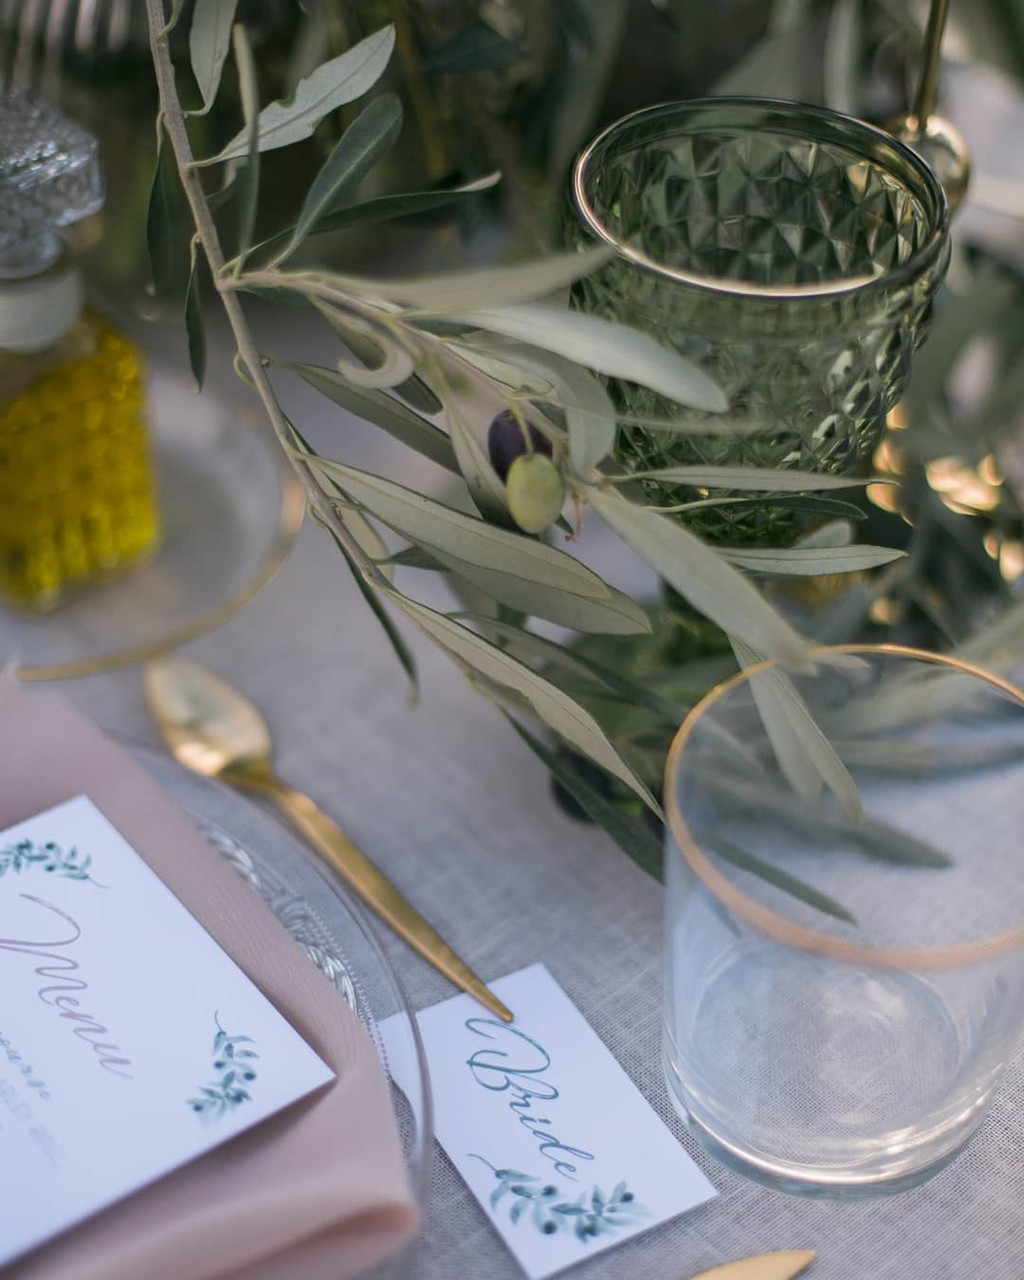 ▪Details make the difference. Olive branch, gold cutlery and hand painted stationery in Sounion Temple of Poseidon, Greece▪